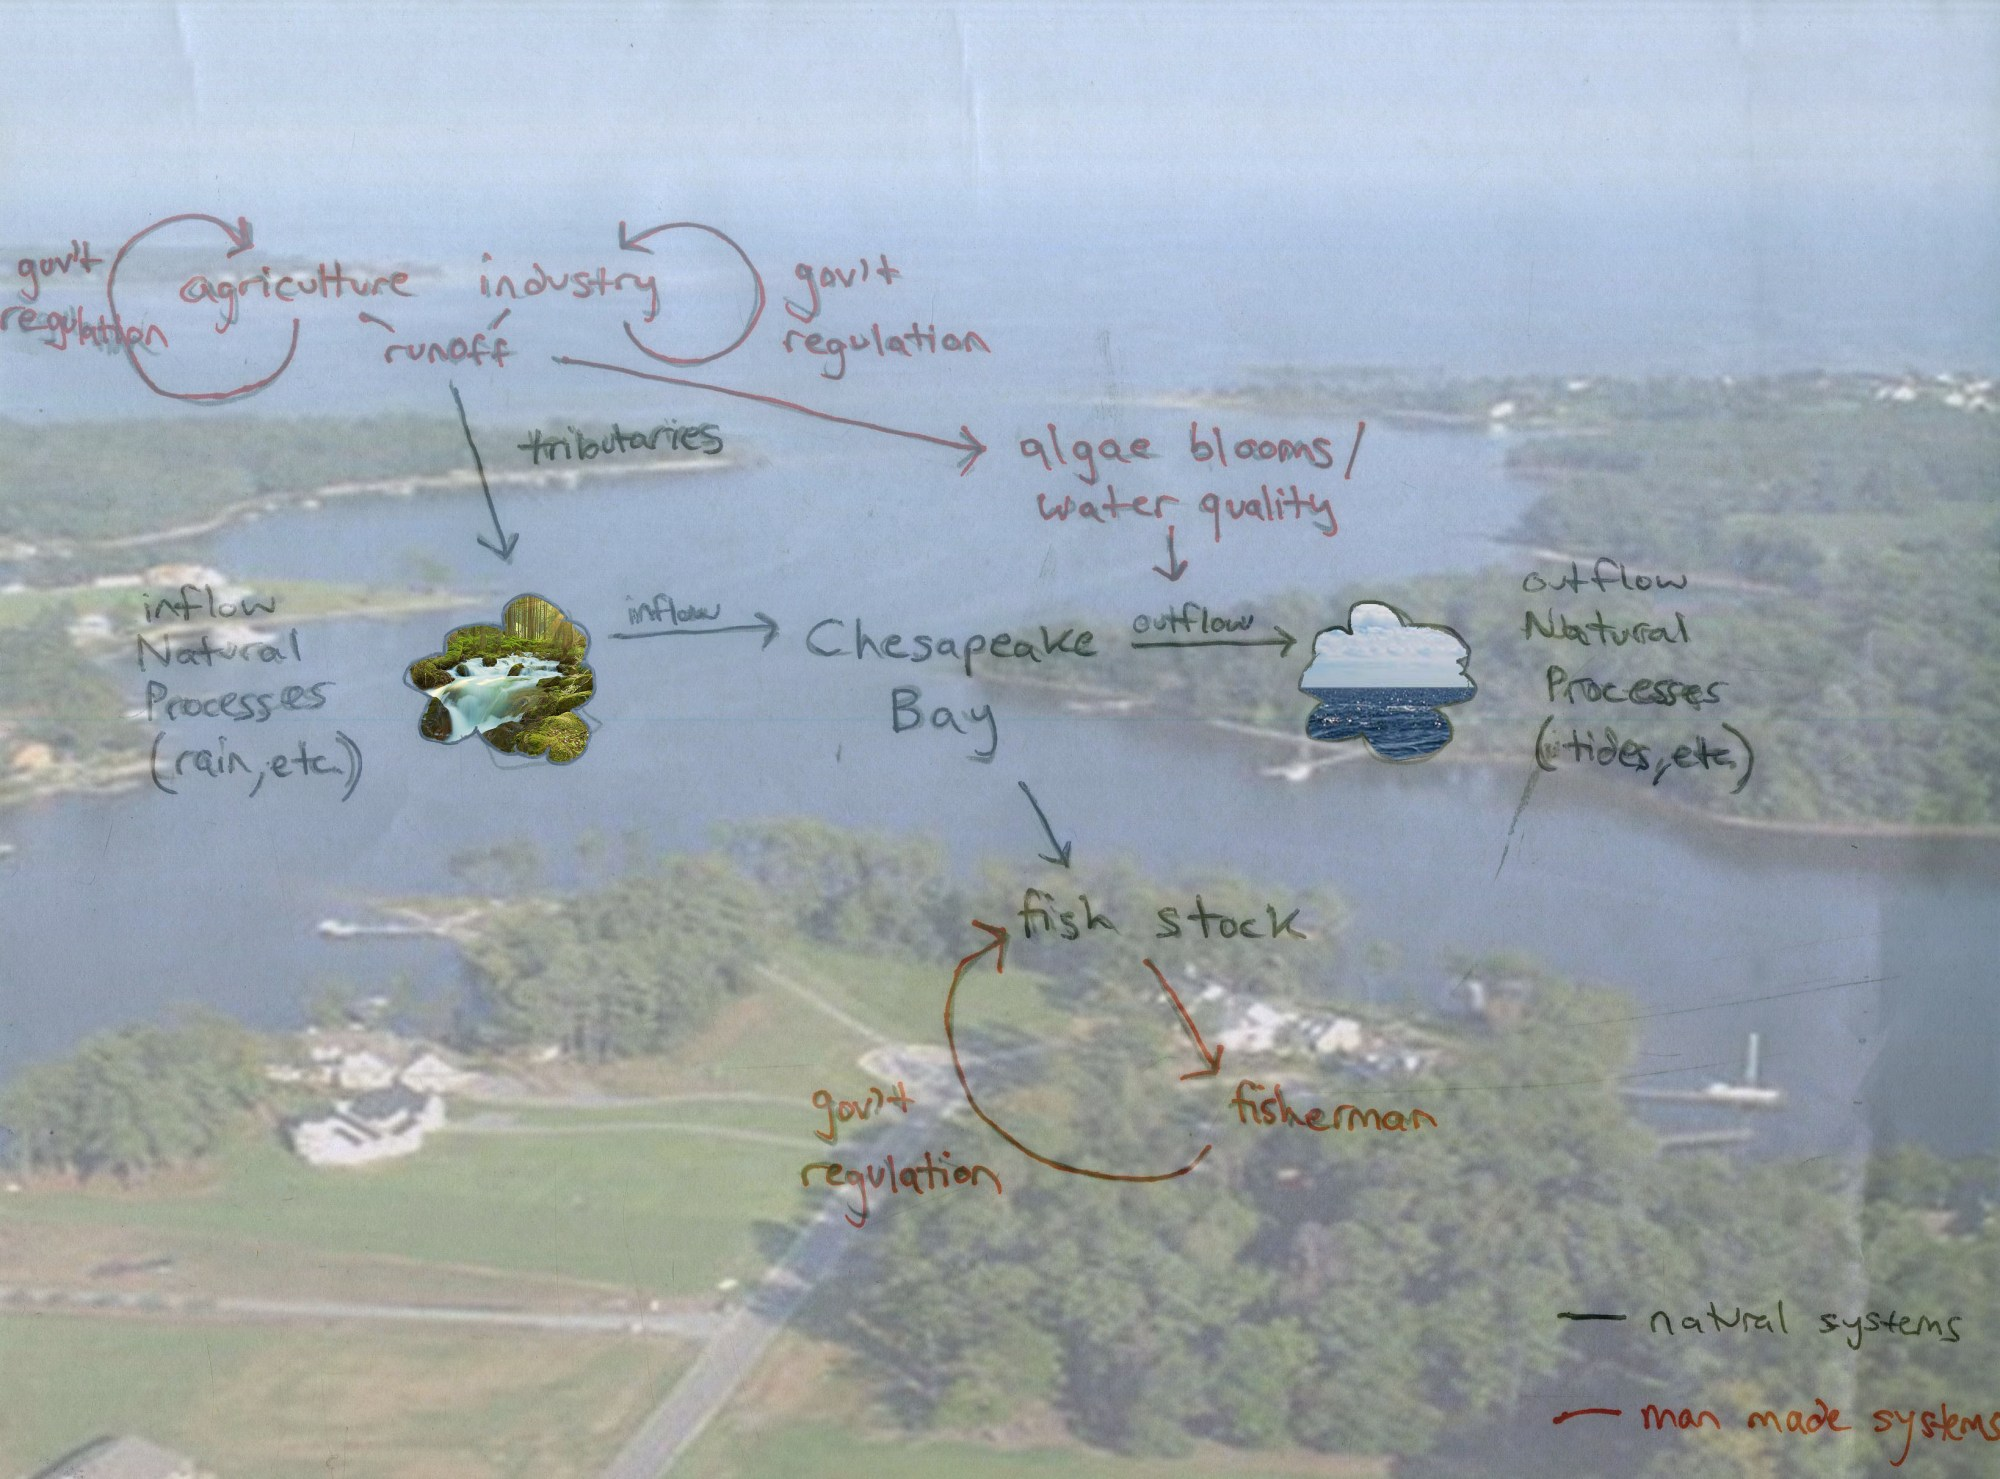 hight resolution of describe how your diagram and understanding have changed since your first diagram of the chesapeake bay watershed system